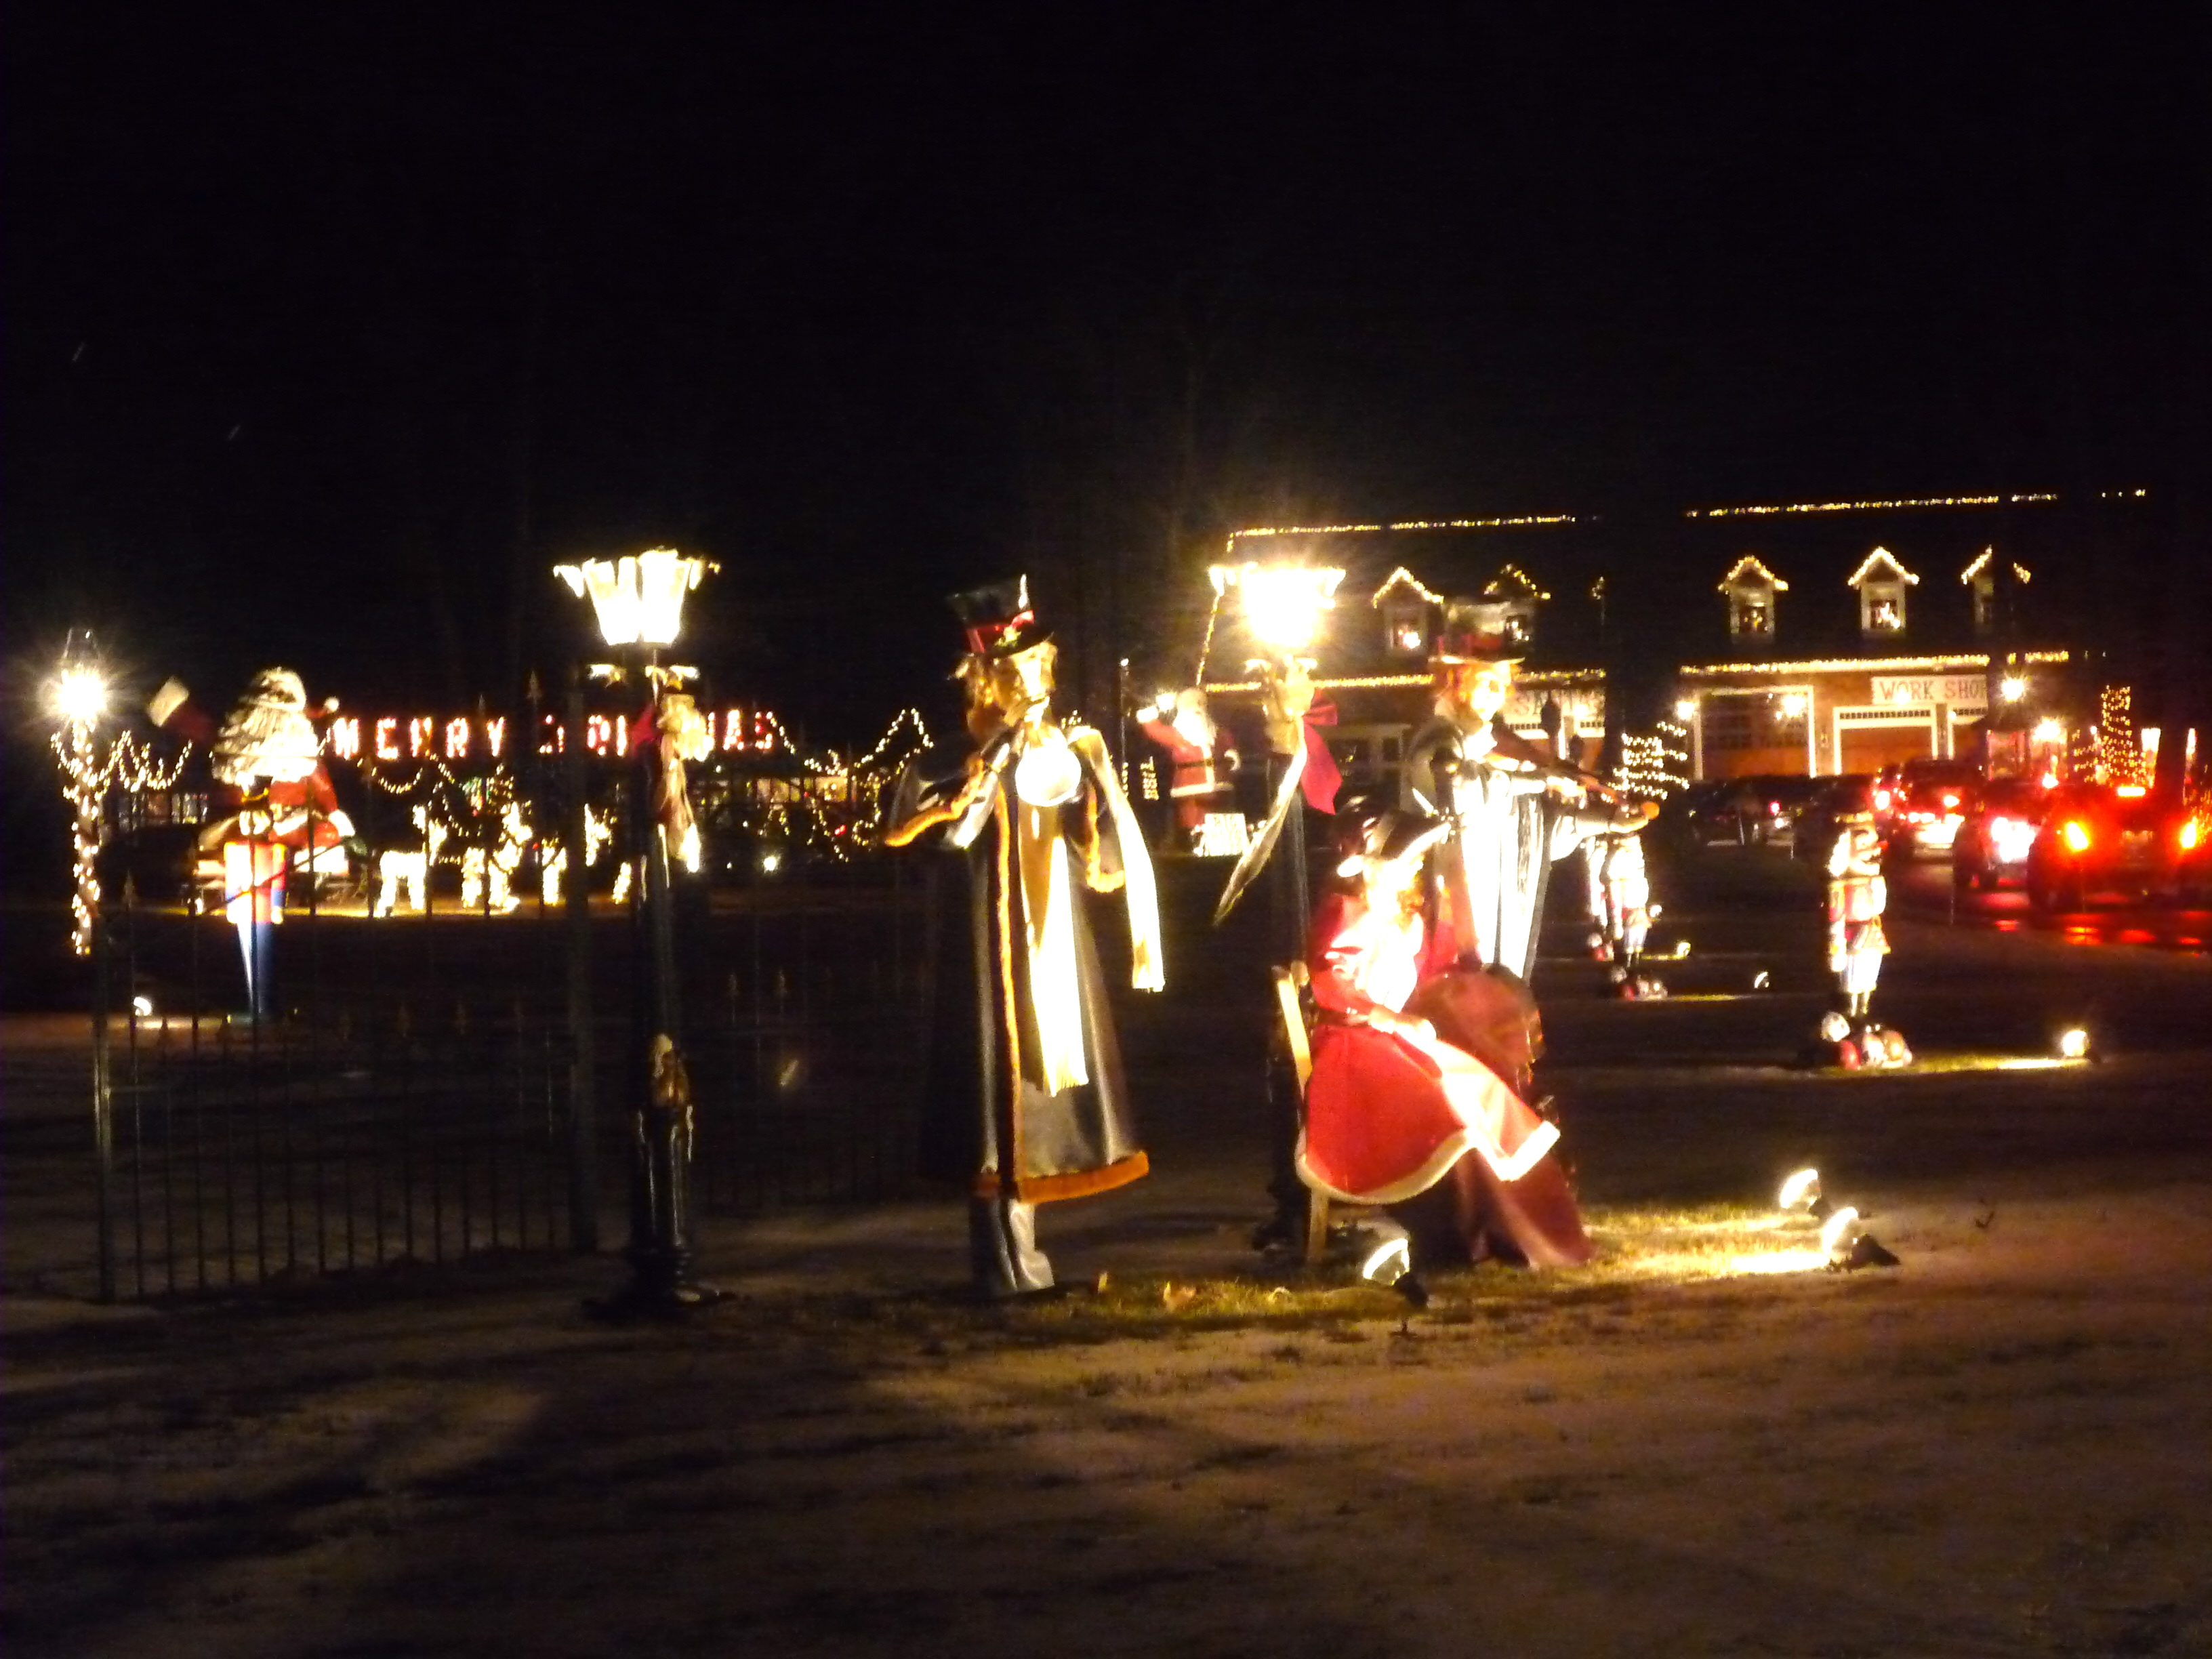 Millis Wonderland Christmas Display, Millis MA (CLOSED)